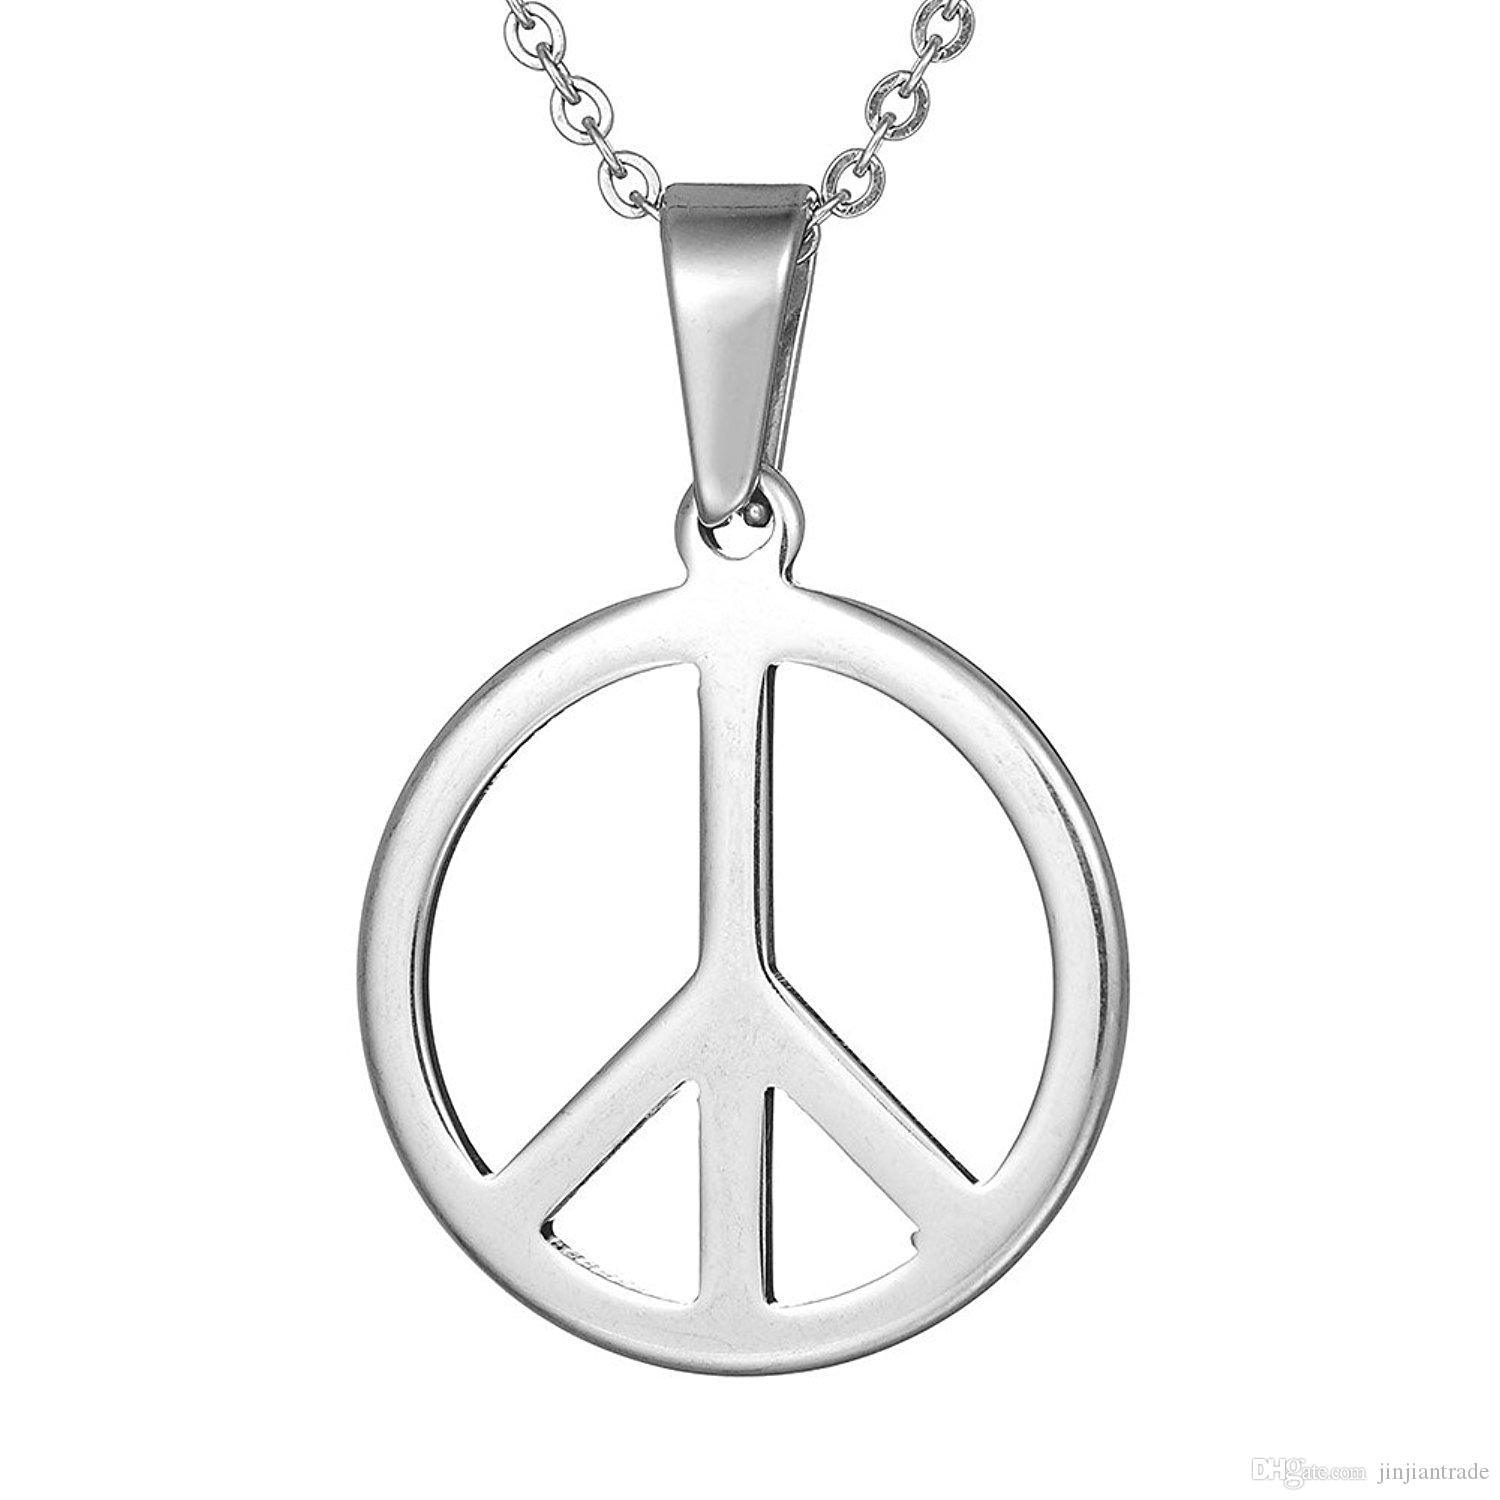 Wholesale hippie stainless steel jewelry silver peace sign pendant wholesale hippie stainless steel jewelry silver peace sign pendant necklace for men with steel ball chain chains to choose silver pendant necklace gold aloadofball Images